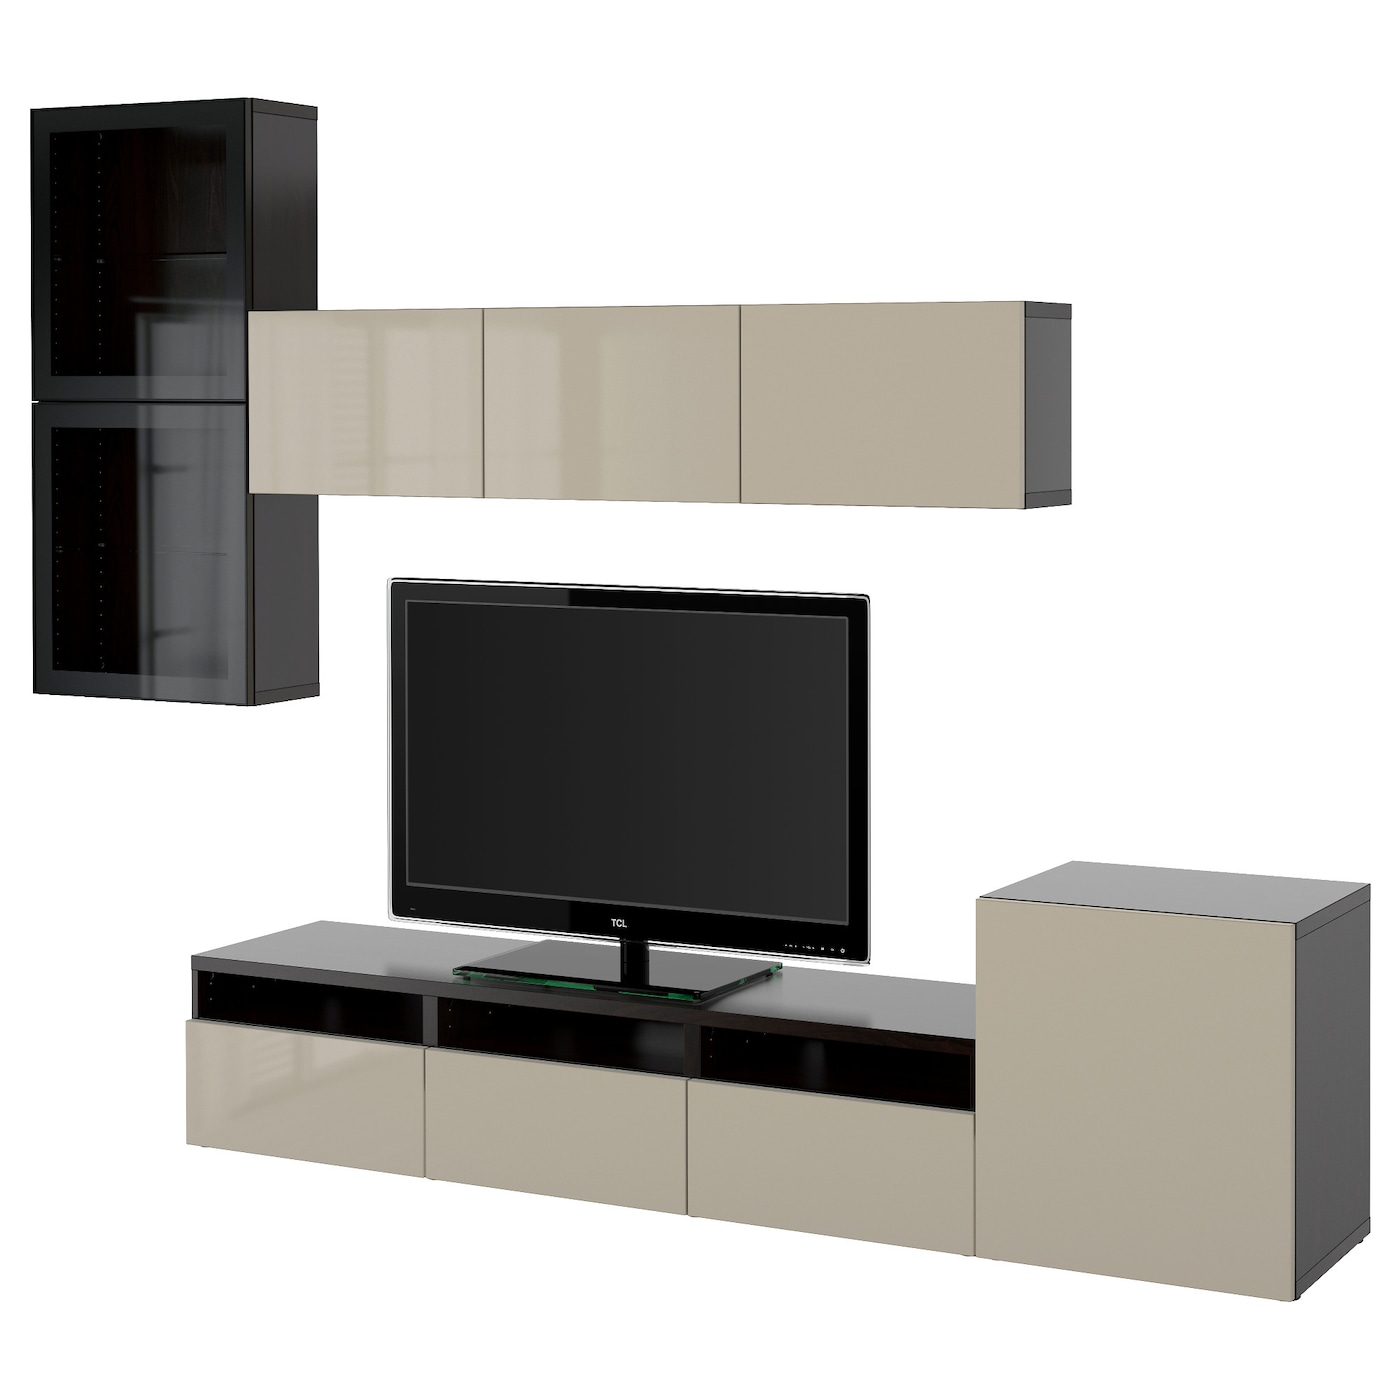 Tv Storage Unit Tv Wall Units Ikea # Meuble Support Tv